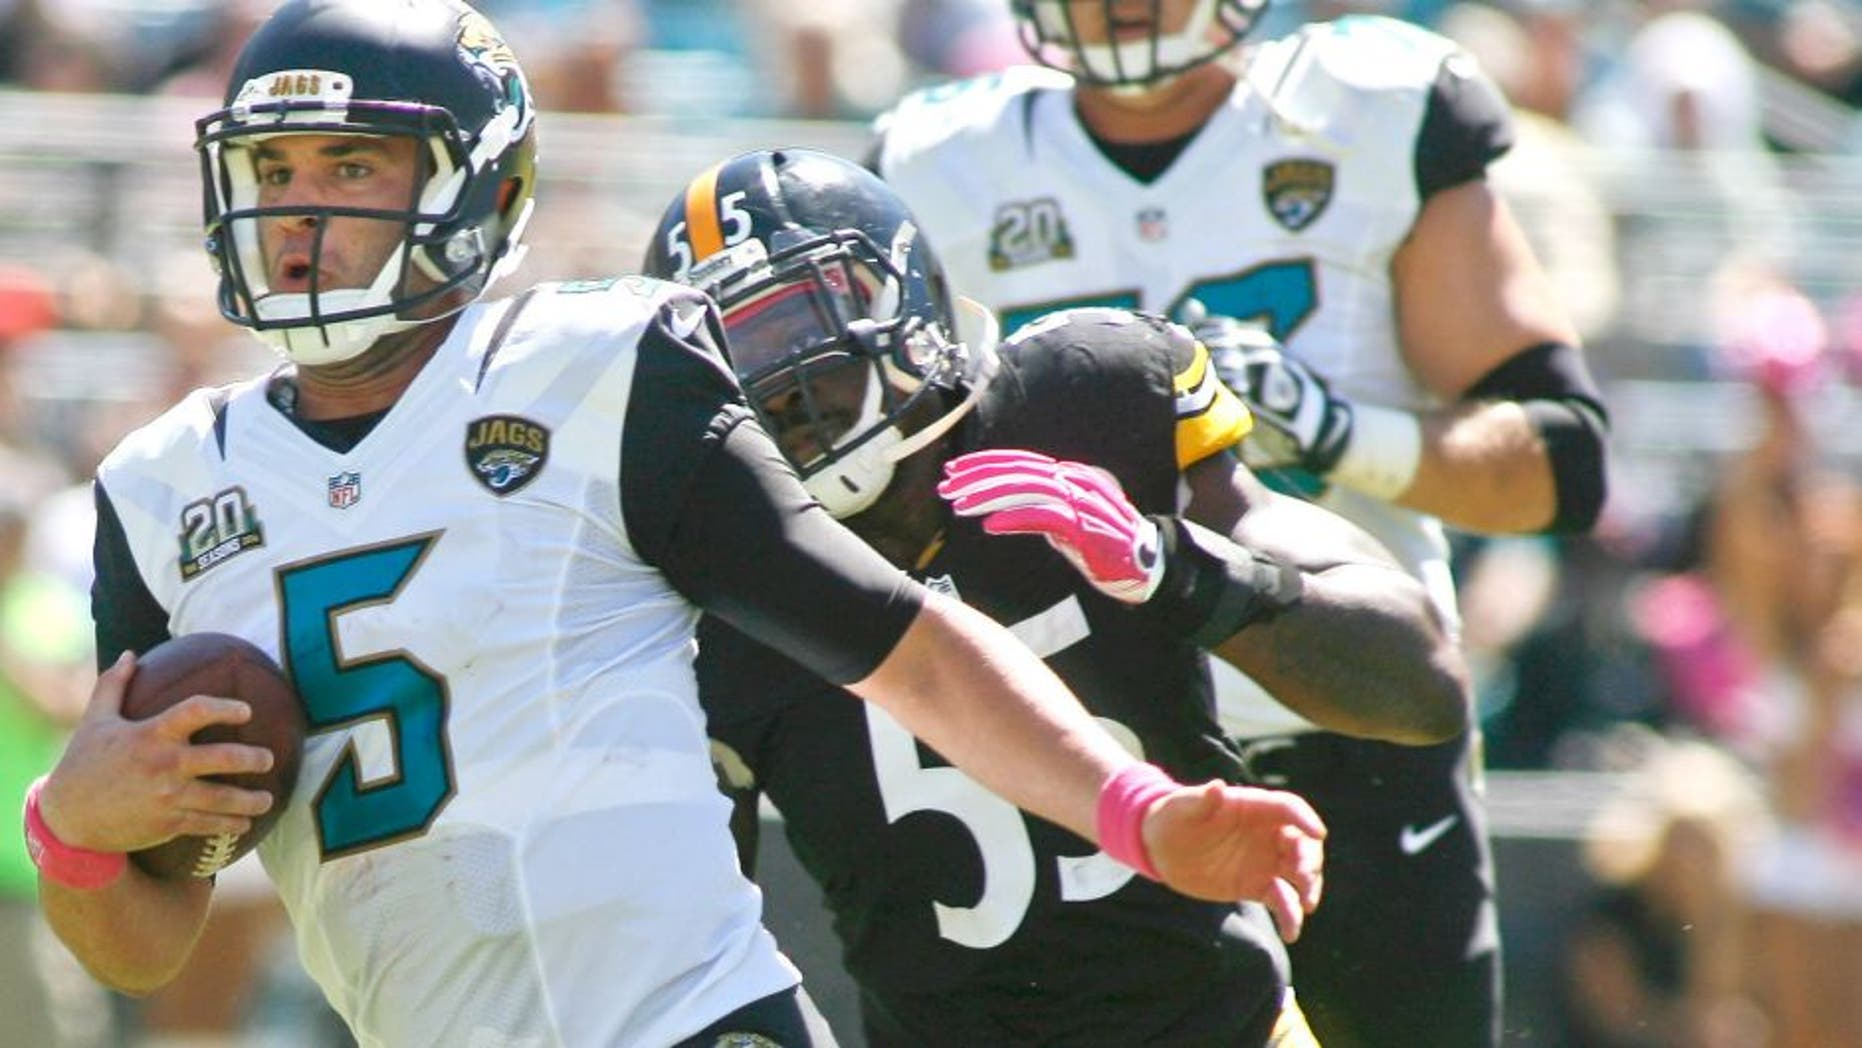 Oct 5, 2014; Jacksonville, FL, USA; Jacksonville Jaguars quarterback Blake Bortles (5) runs past Pittsburgh Steelers outside linebacker Arthur Moats (55) for a first down in the first quarter of their game at EverBank Field. Mandatory Credit: Phil Sears-USA TODAY Sports